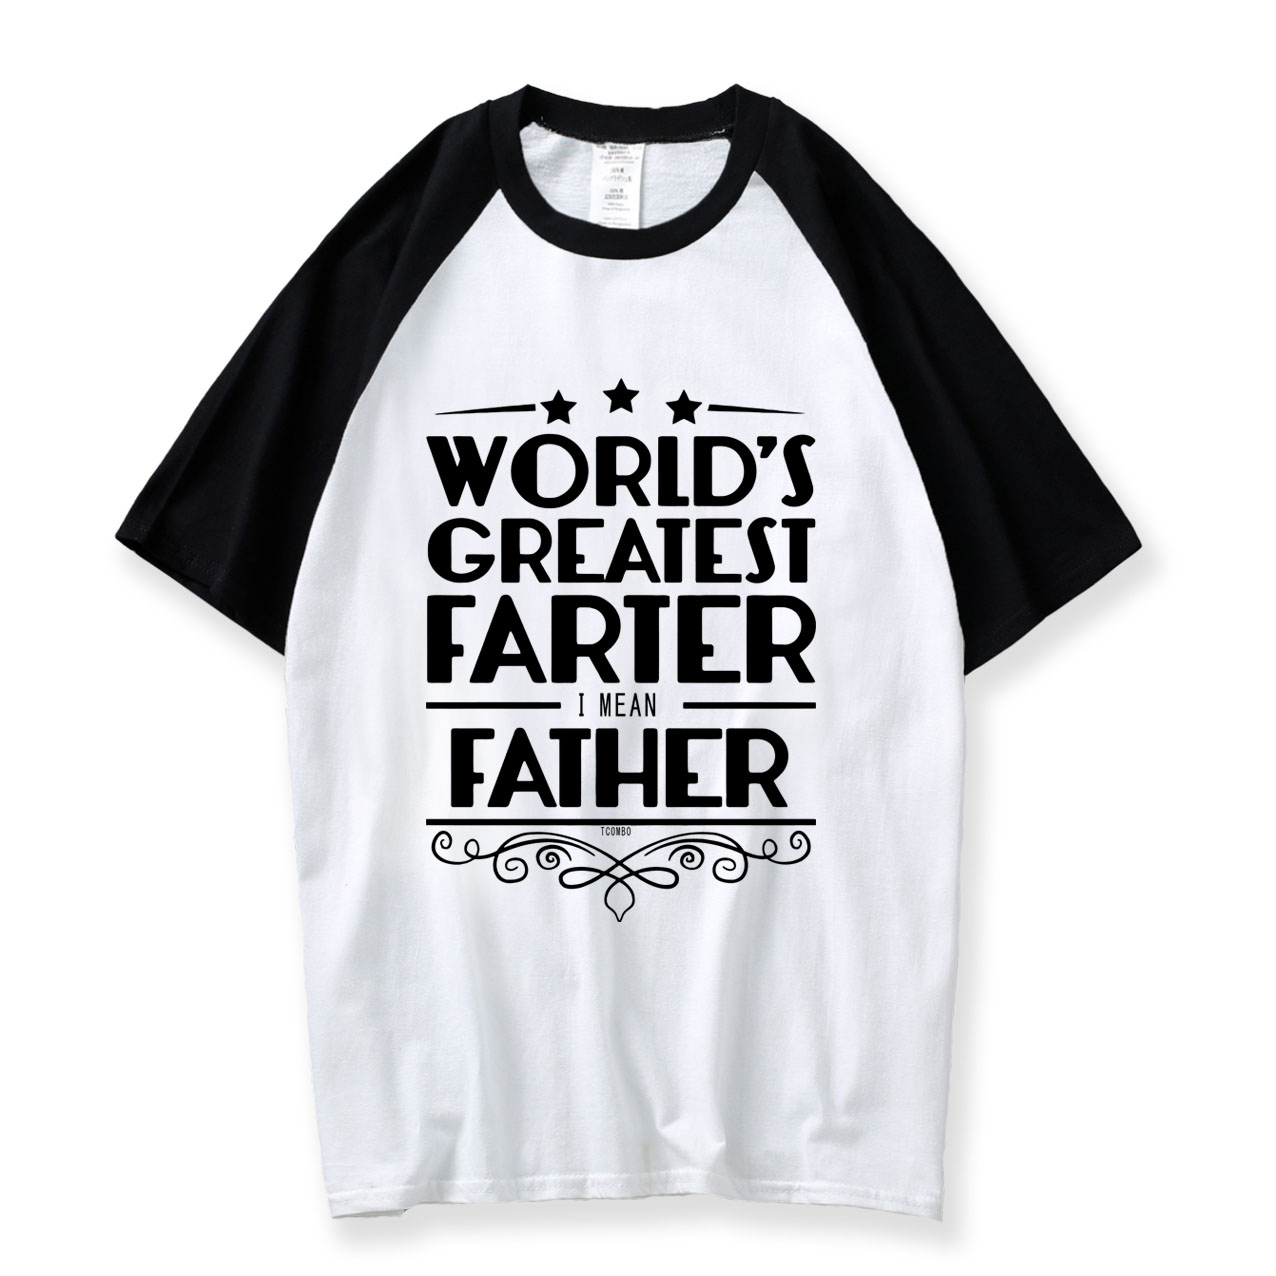 Gift For Father T-shirt World's Greatest Father Print Men T Shirt 2018 Summer 100% Cotton Raglan O Neck Funny Tshirts For Dads